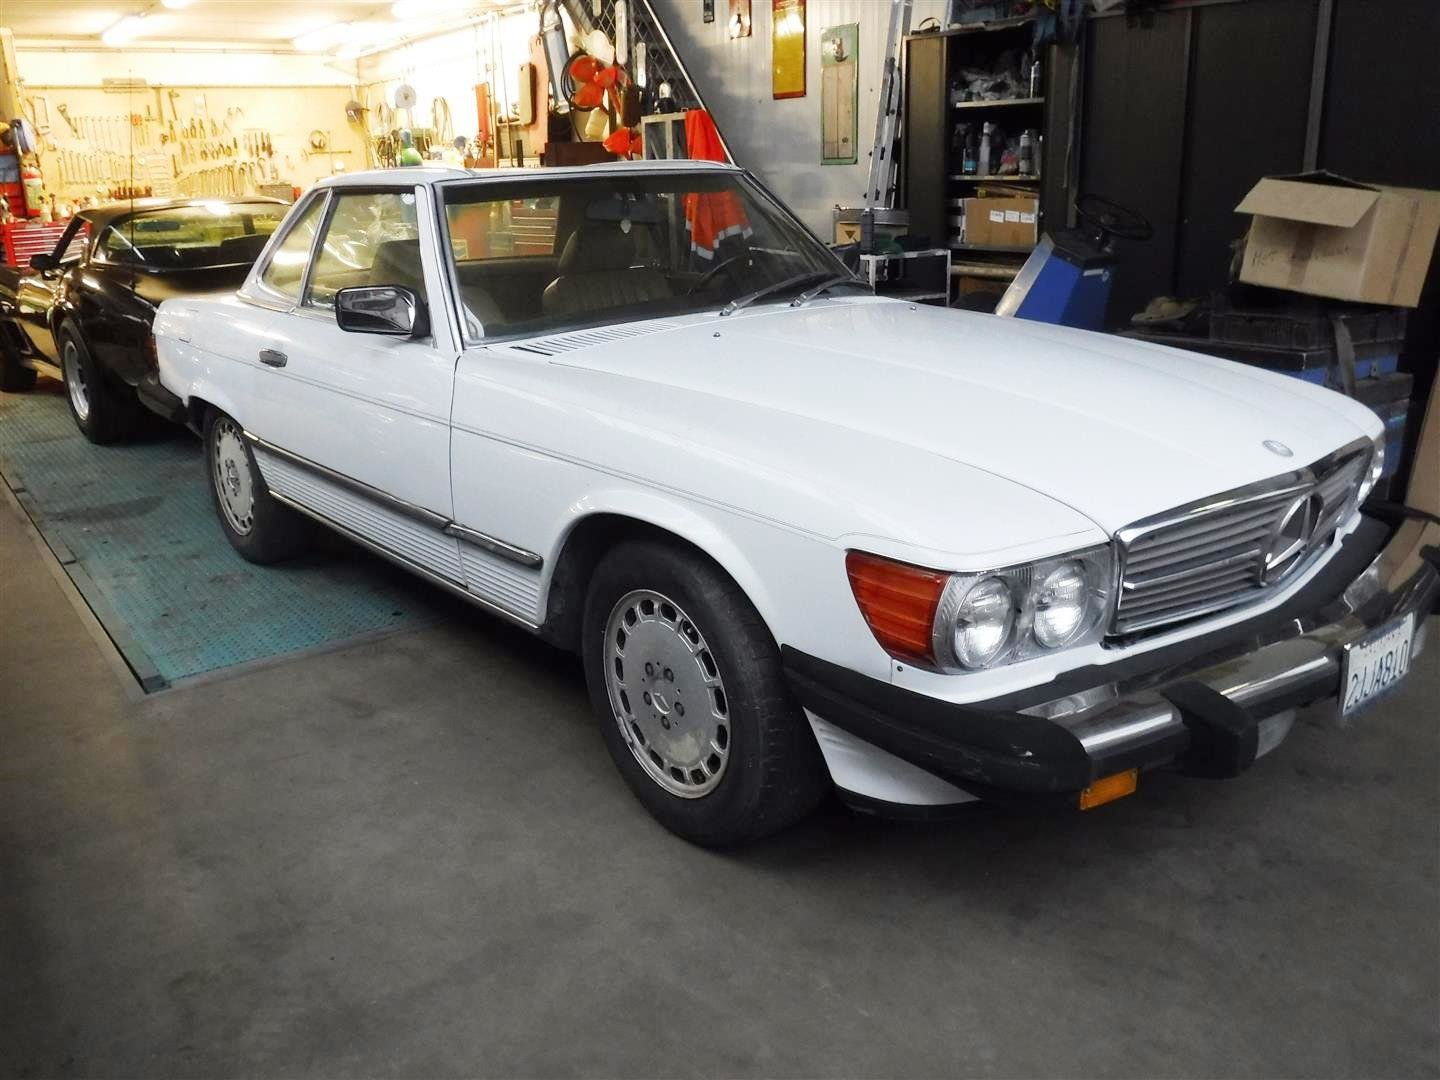 1987 Mercedes Benz 560SL '87 For Sale (picture 1 of 6)